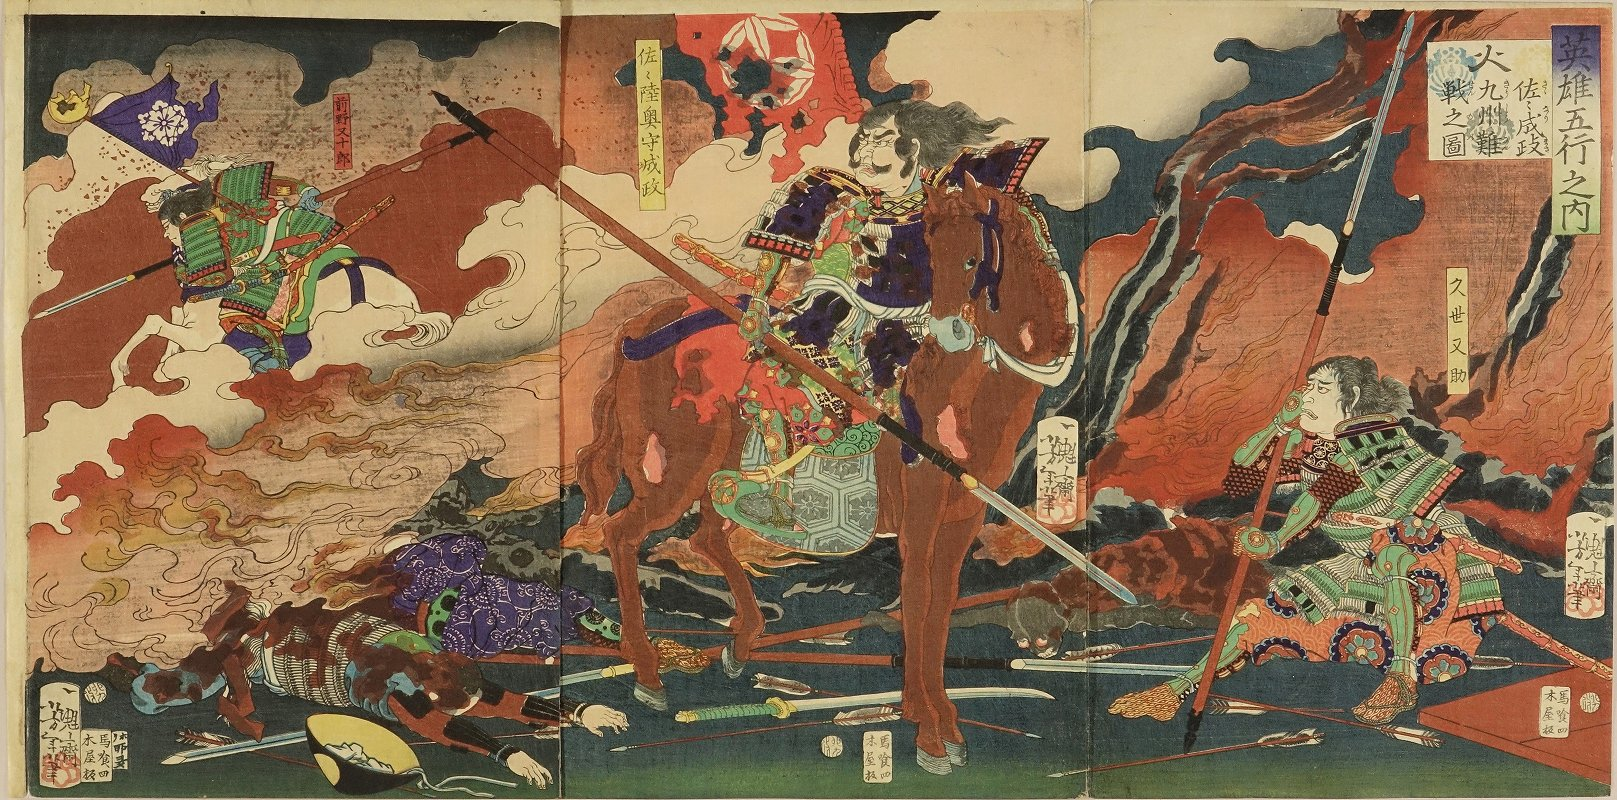 YOSHITOSHI Sassa Narimasa during a protracted battle in Kyushu, subtitled <i>Hi</i> (Fire), from <i>Eiyu gogyo no uchi</i> (Heroes and five elements), triptych